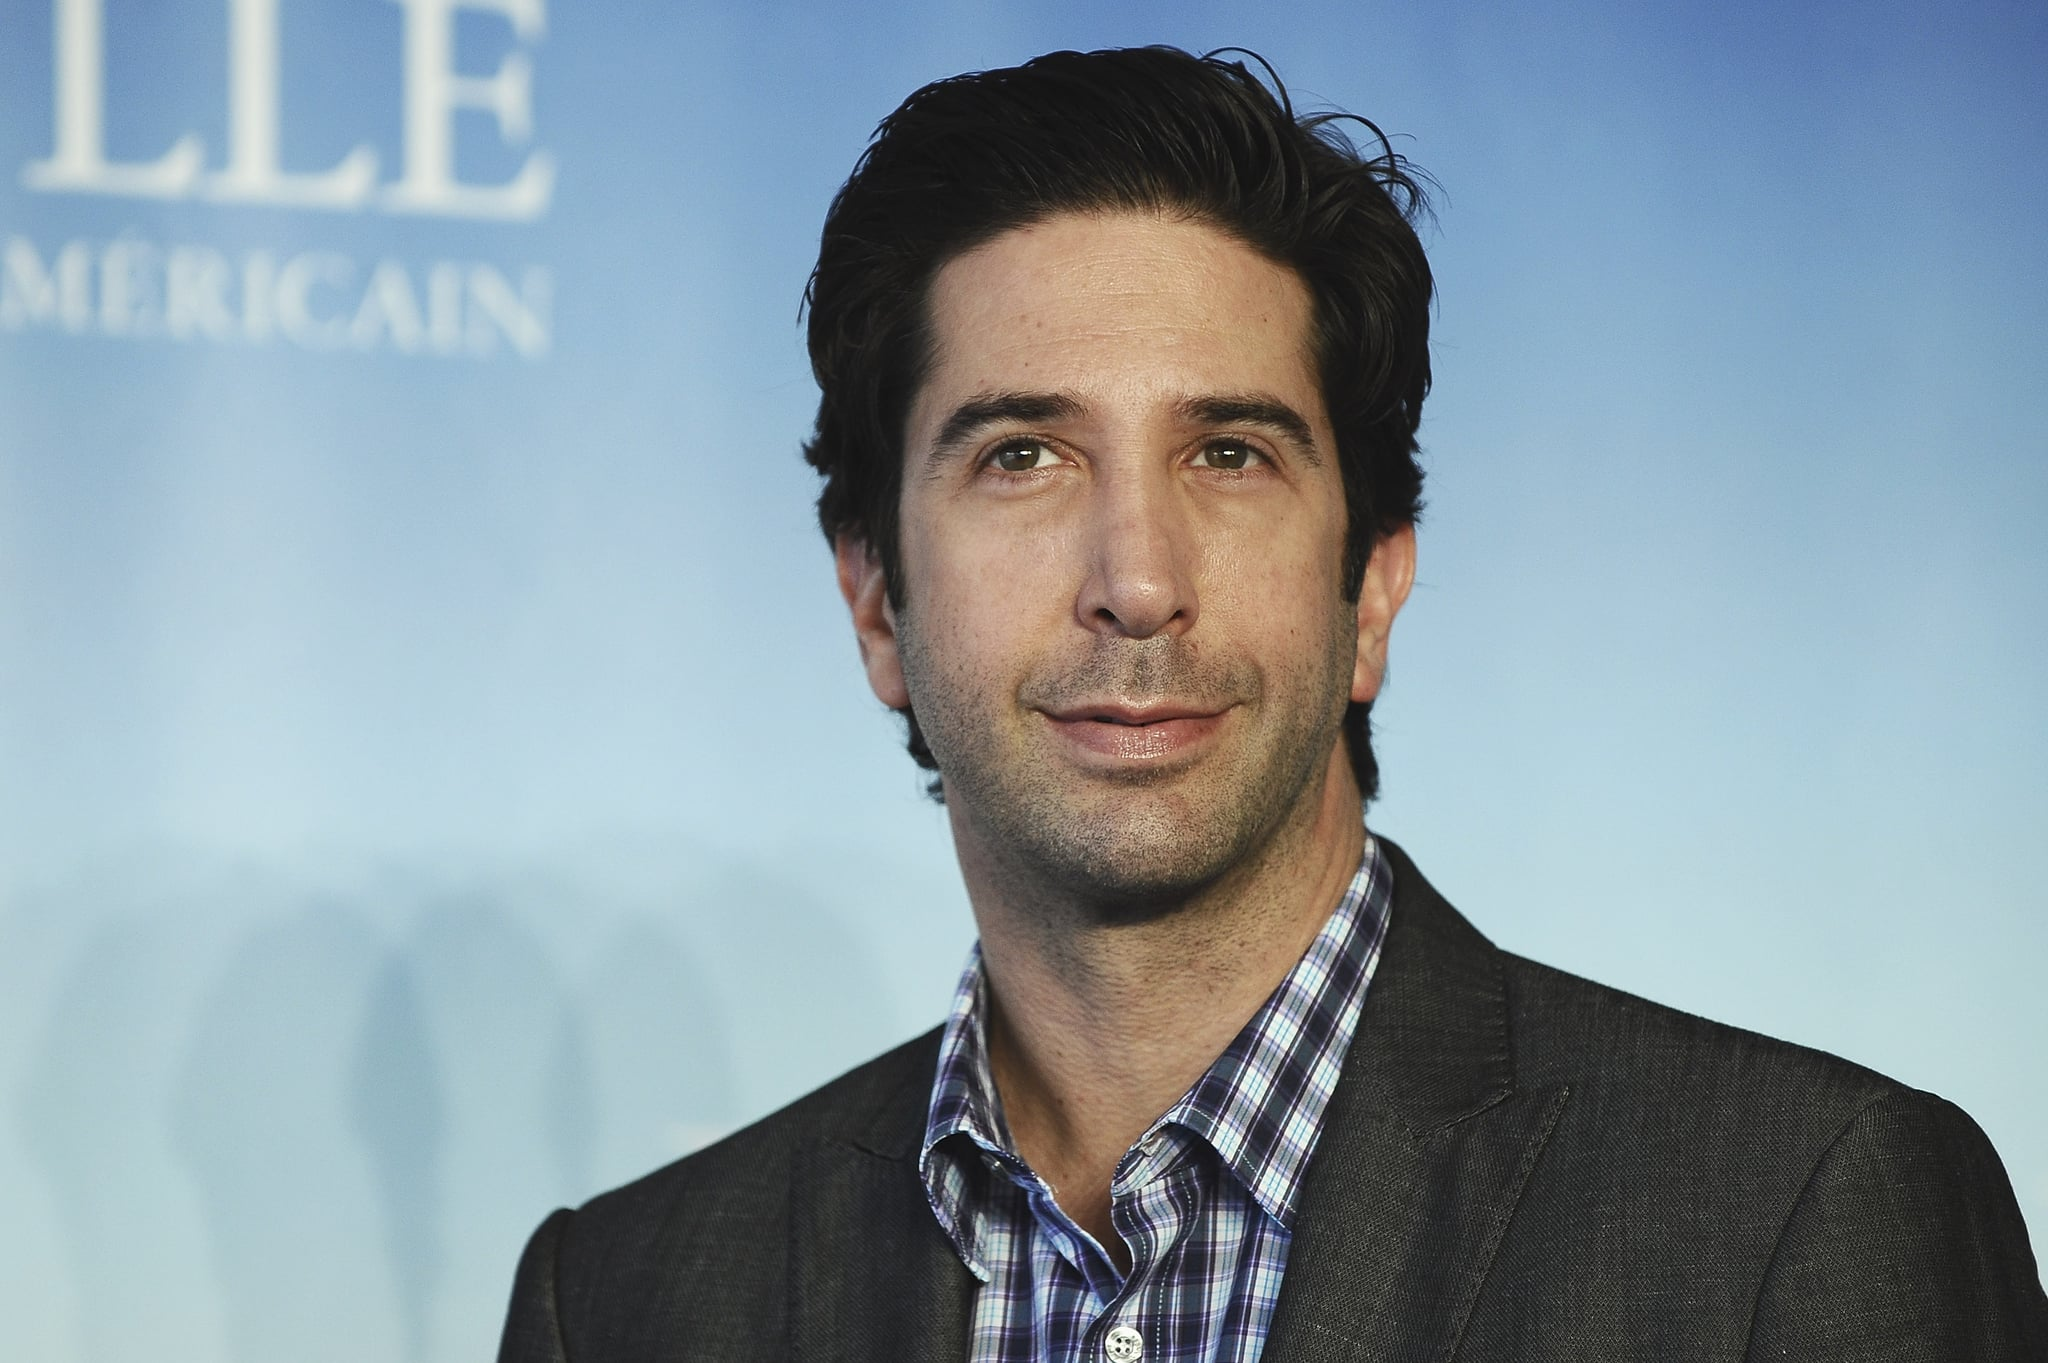 DEAUVILLE, FRANCE - SEPTEMBER 08:  David Schwimmer poses during the 'Trust' photocall during the 37th Deauville American Film Festival on September 8, 2011 in Deauville, France.  (Photo by Francois Durand/Getty Images)